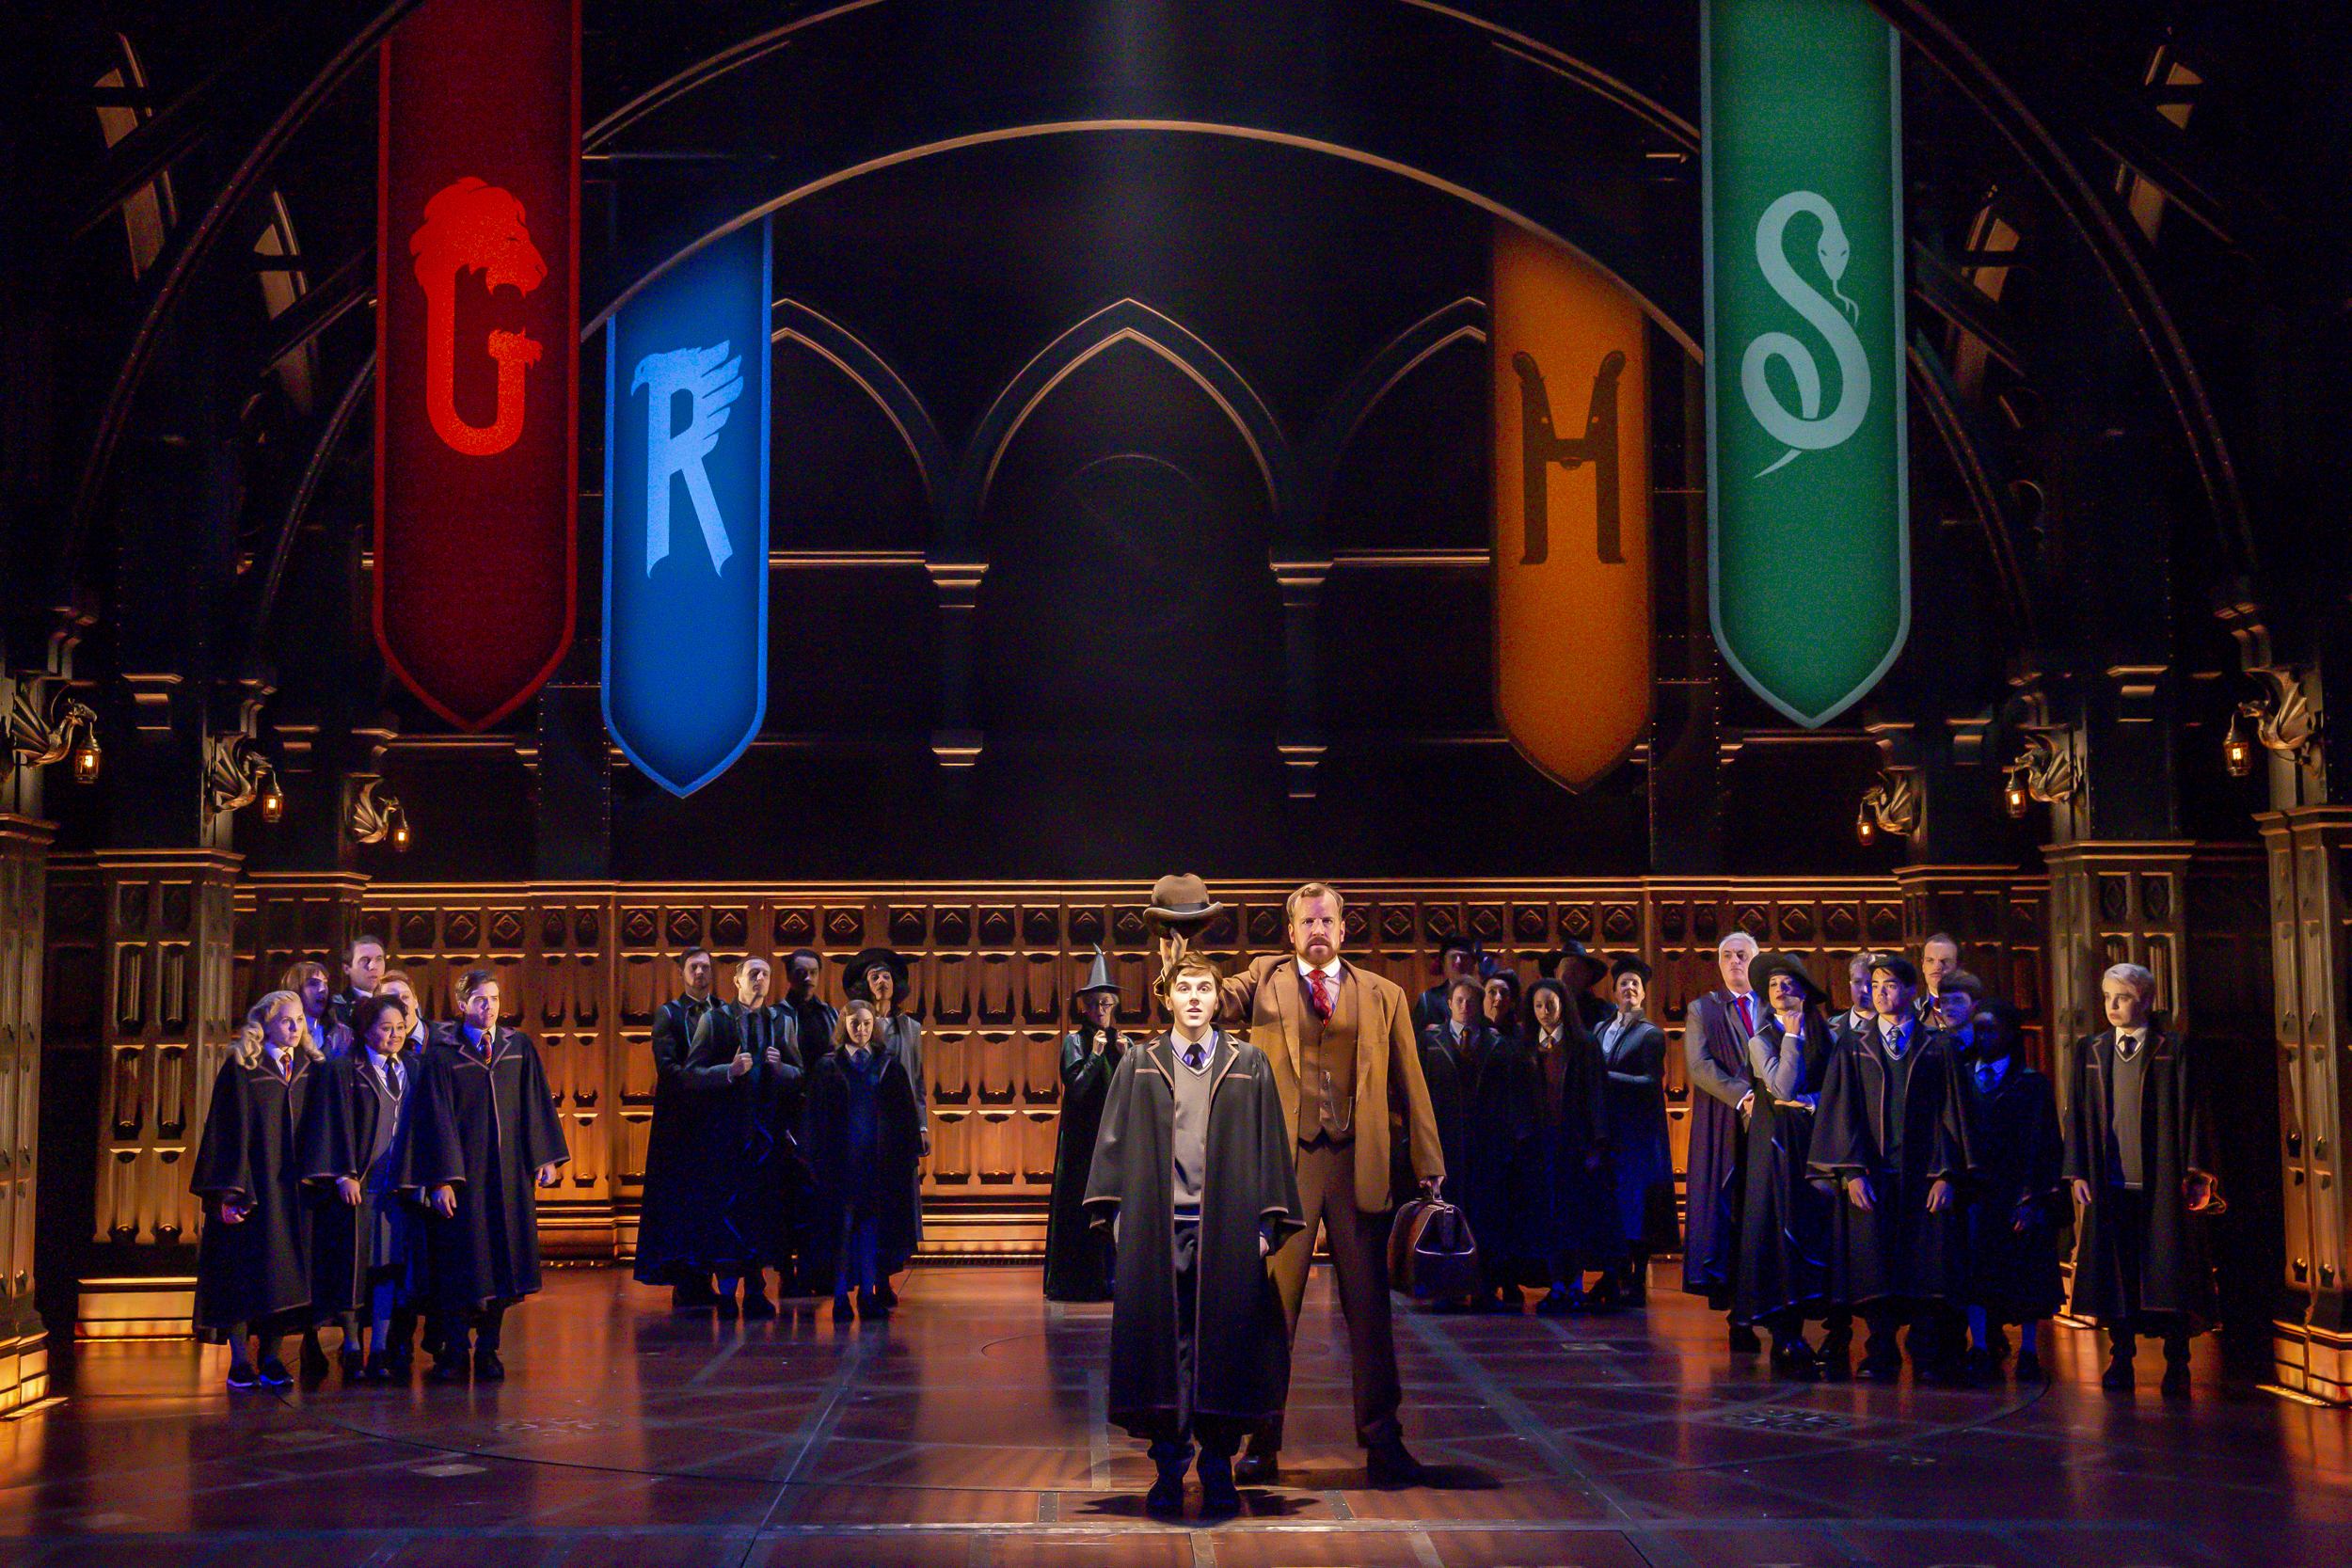 'Harry Potter and the Cursed Child' will premiere on Broadway in November